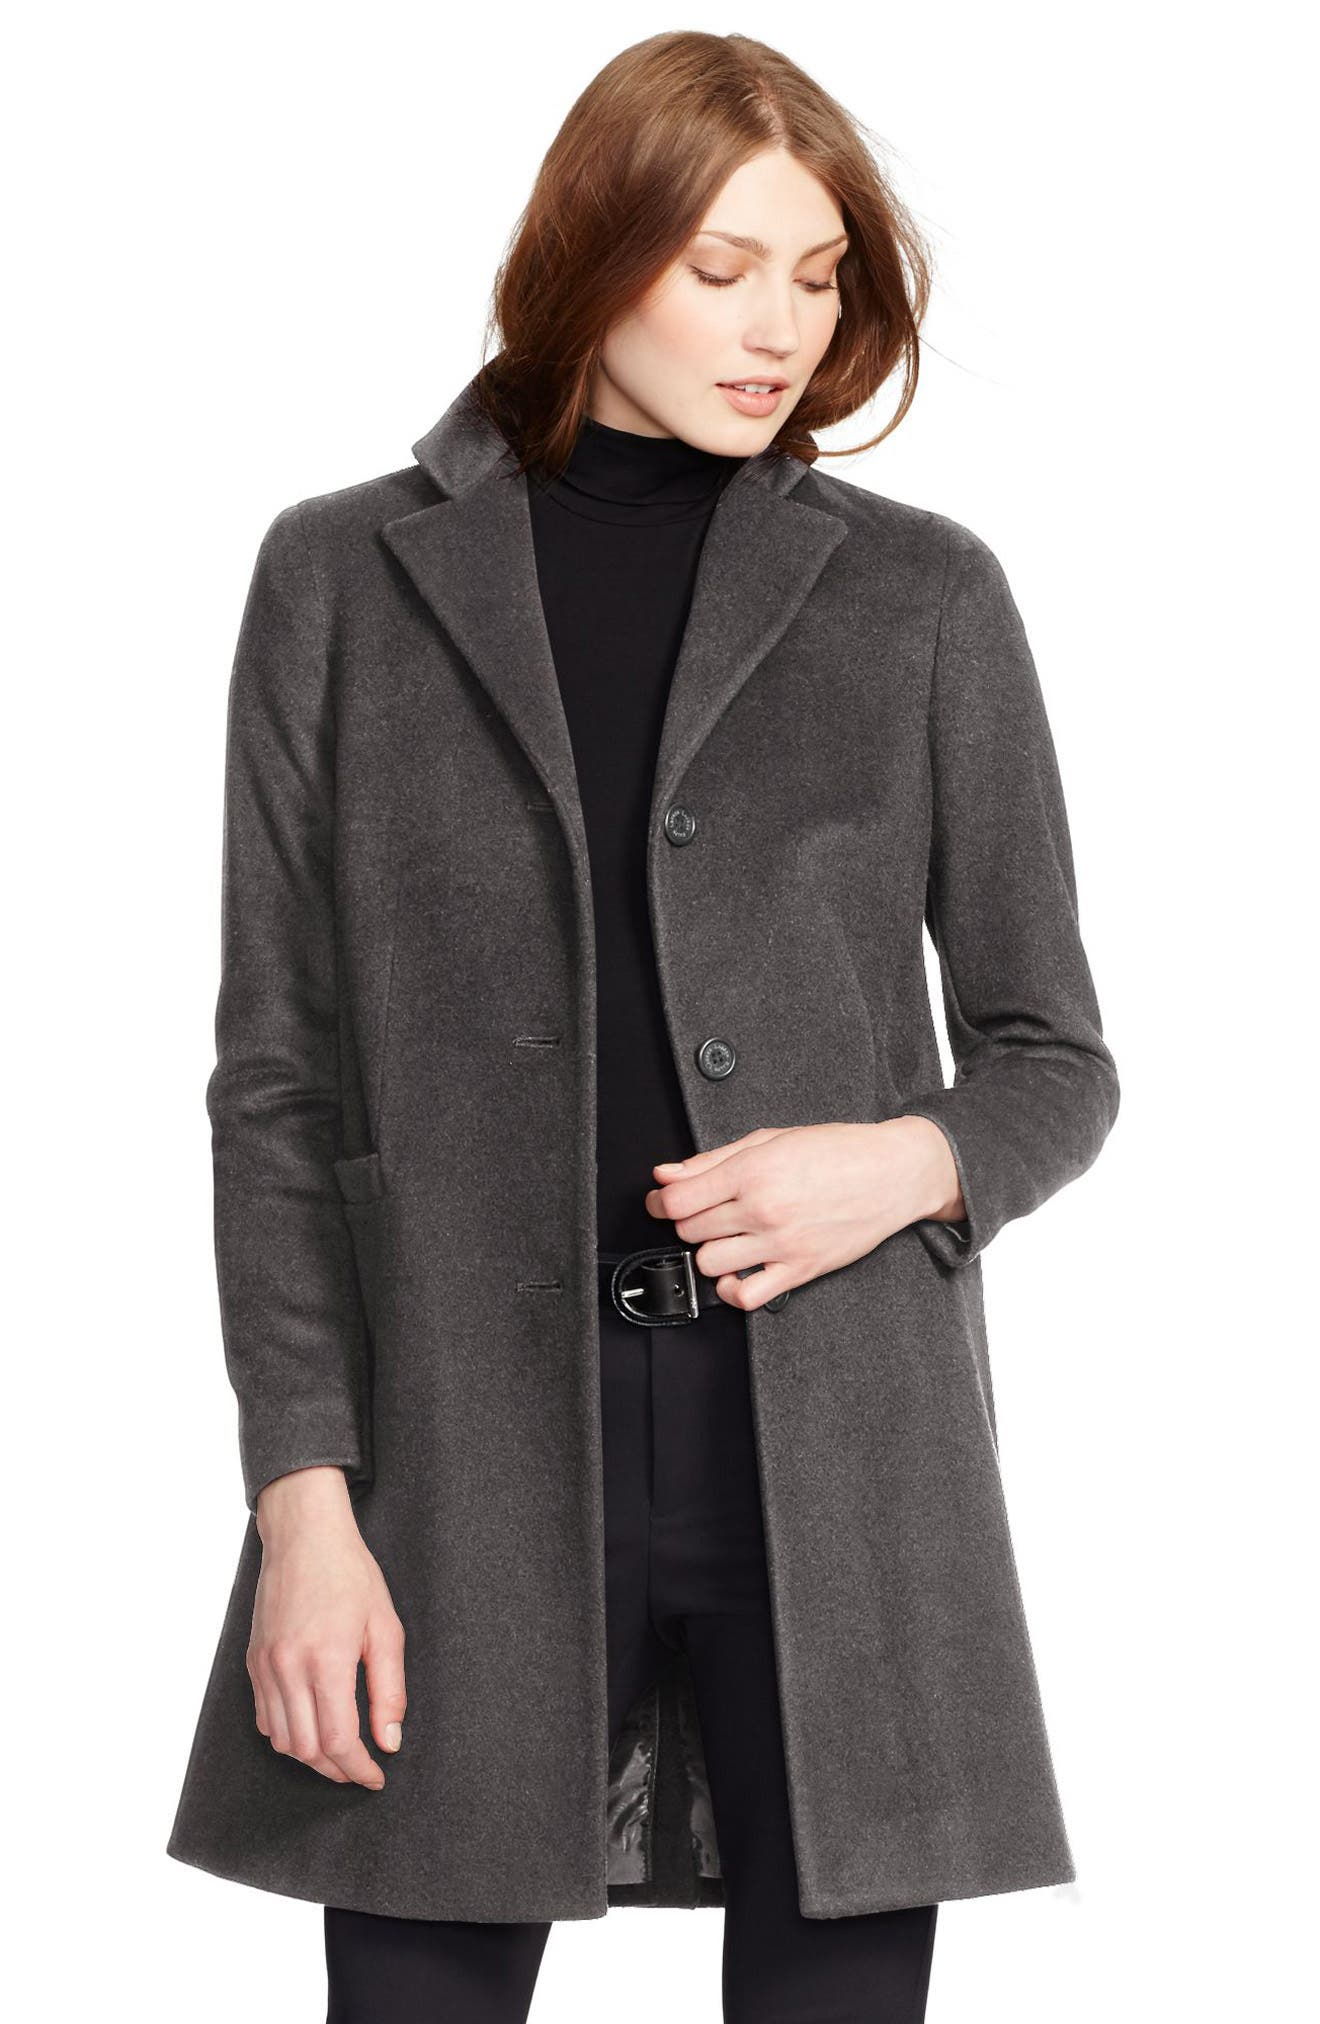 Nordstrom Grey Jackets Coats Women's amp; UH6InwFUq